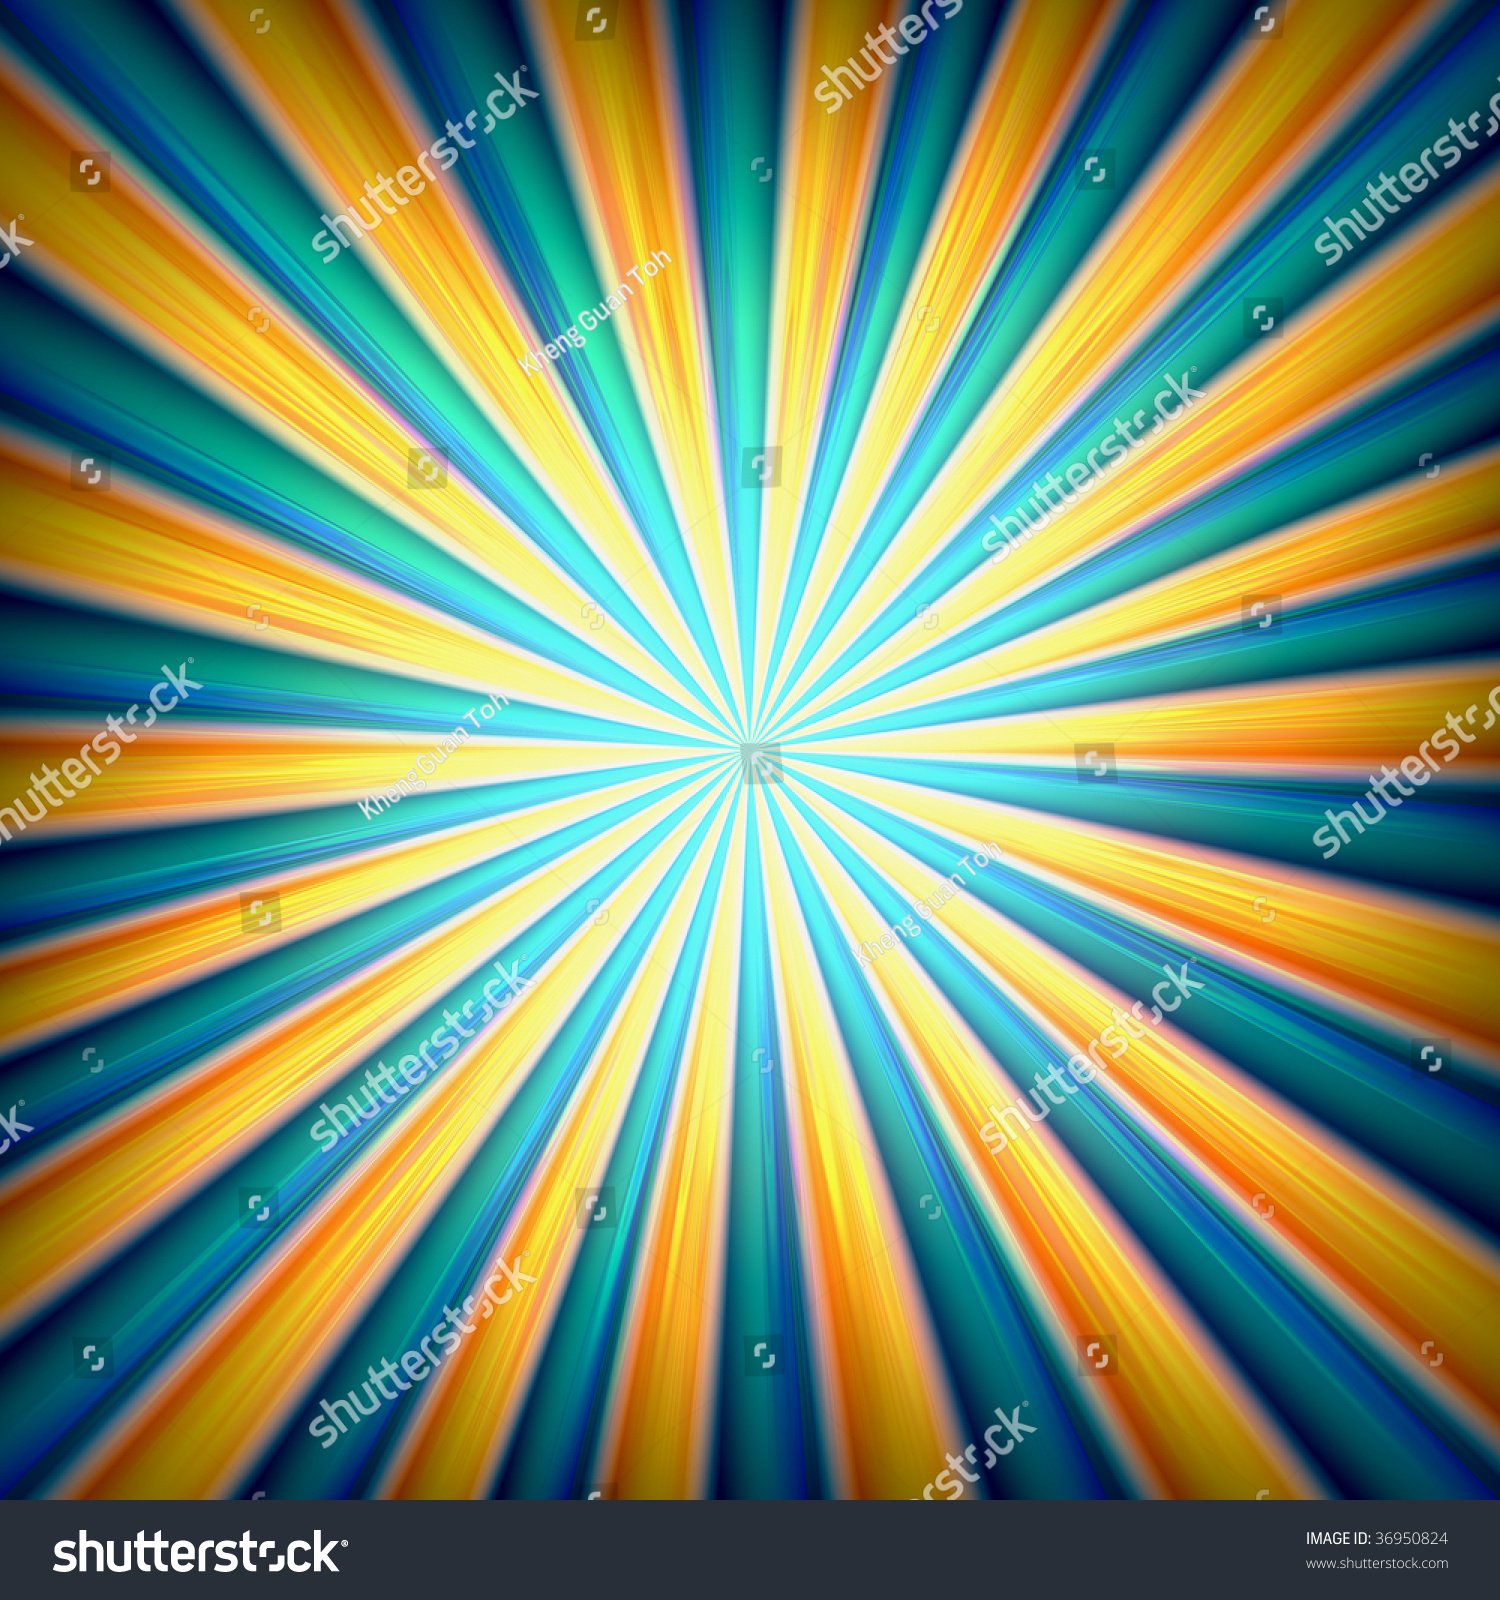 Radial Zoom Burst Of Energy, Abstract Background